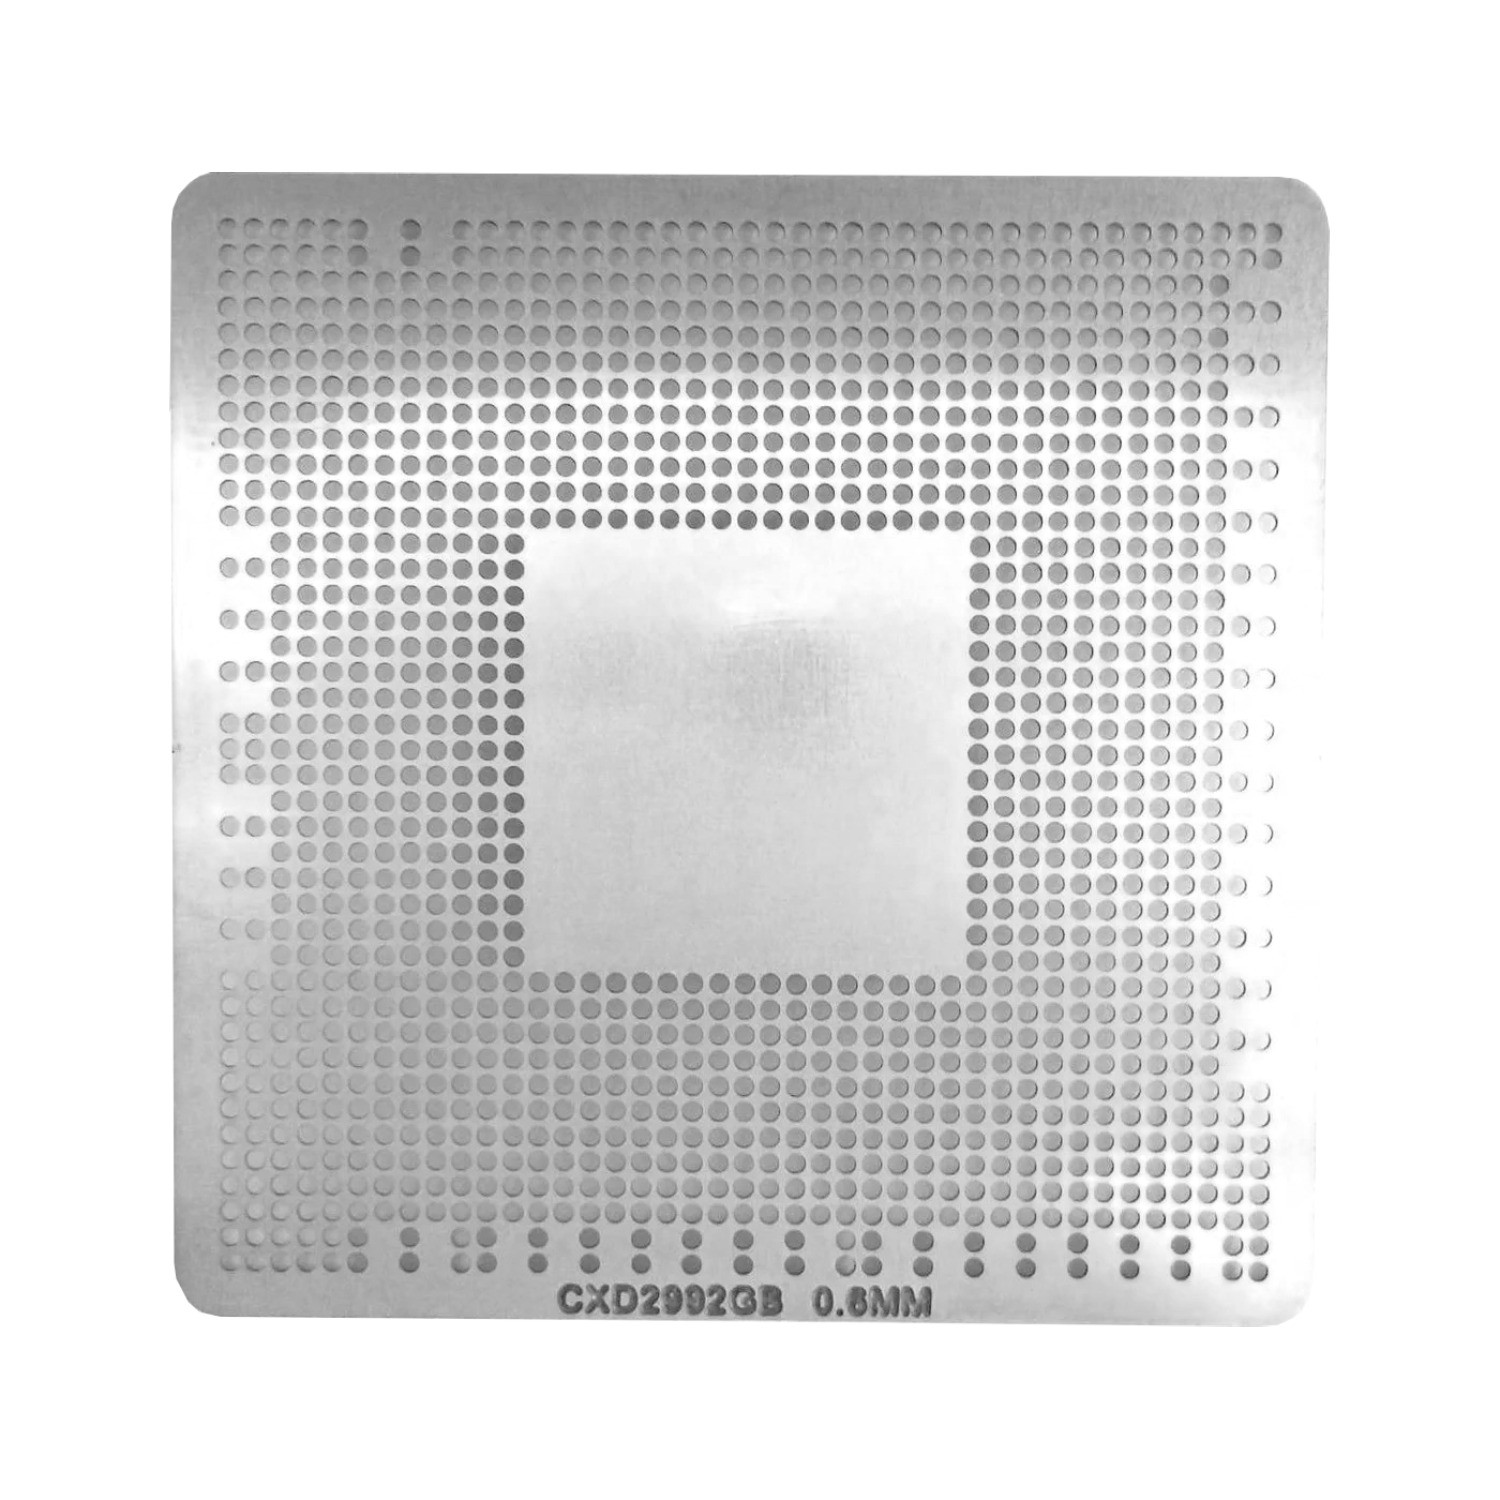 Stencil Cxd2992gb 0,6mm Calor Direto Reballing Bga - GM4